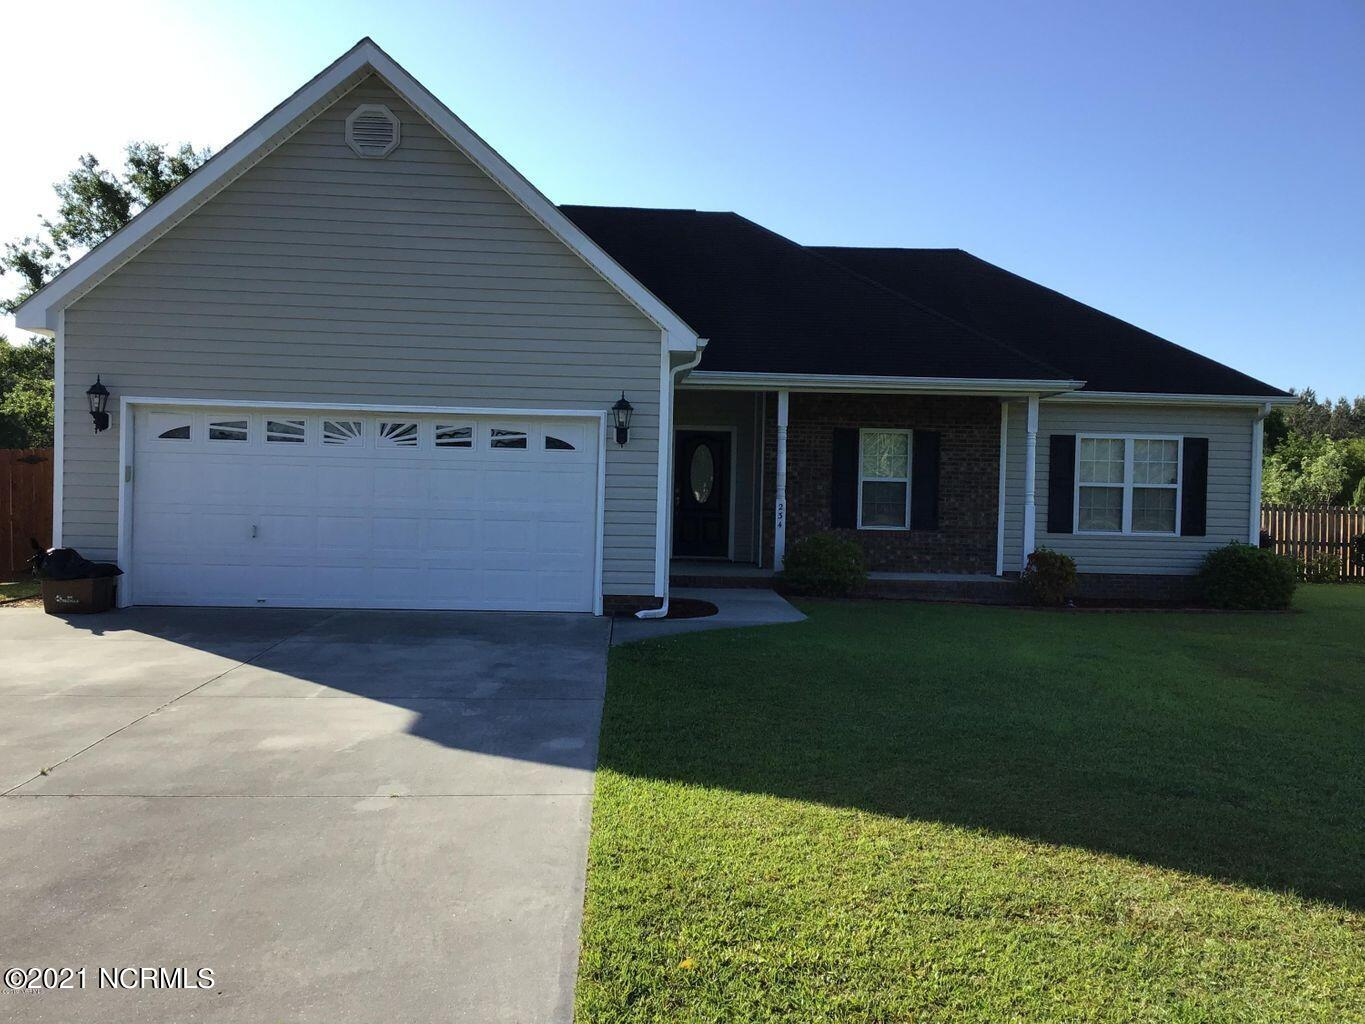 Away from the hustle and bustle of city life this home in Brookstone will fit your family's needs!  Featuring four bedrooms, two full baths, large living room with fireplace, dining area, kitchen with appliances, laundry room, garage, fenced backyard with open deck and enjoy the cooler evening on the front porch! Call for you preview!